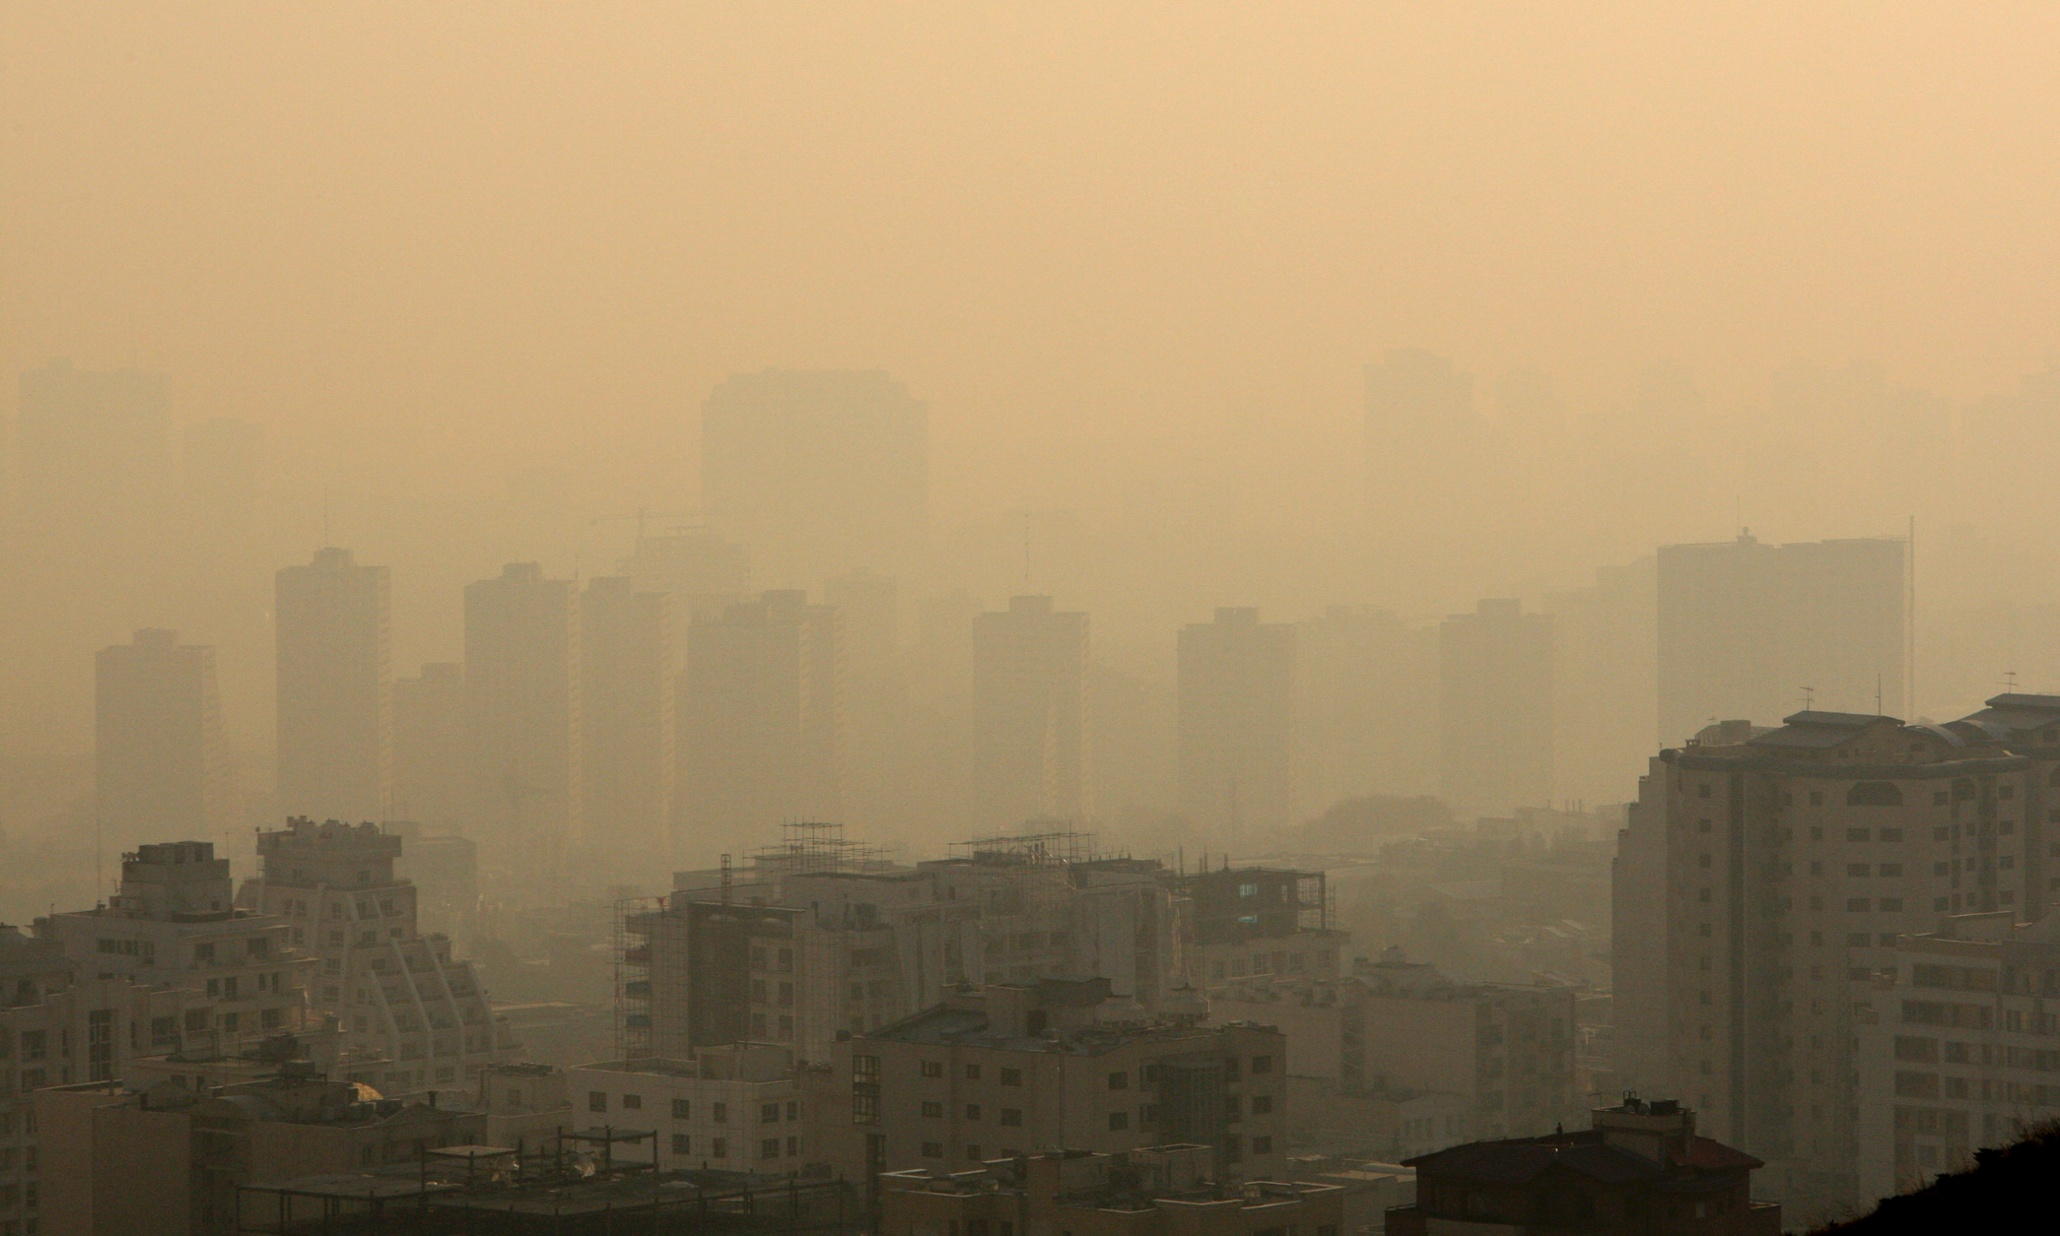 iran pollution Iran's pollution worries come by air and water - npr (january 31, 2007) iran smog 'kills 3,600 in month' - bbc (january 9, 2007) mainstreaming environment in the energy sector - the case of the energy- environment review for iran - world bank (december 1, 2006).